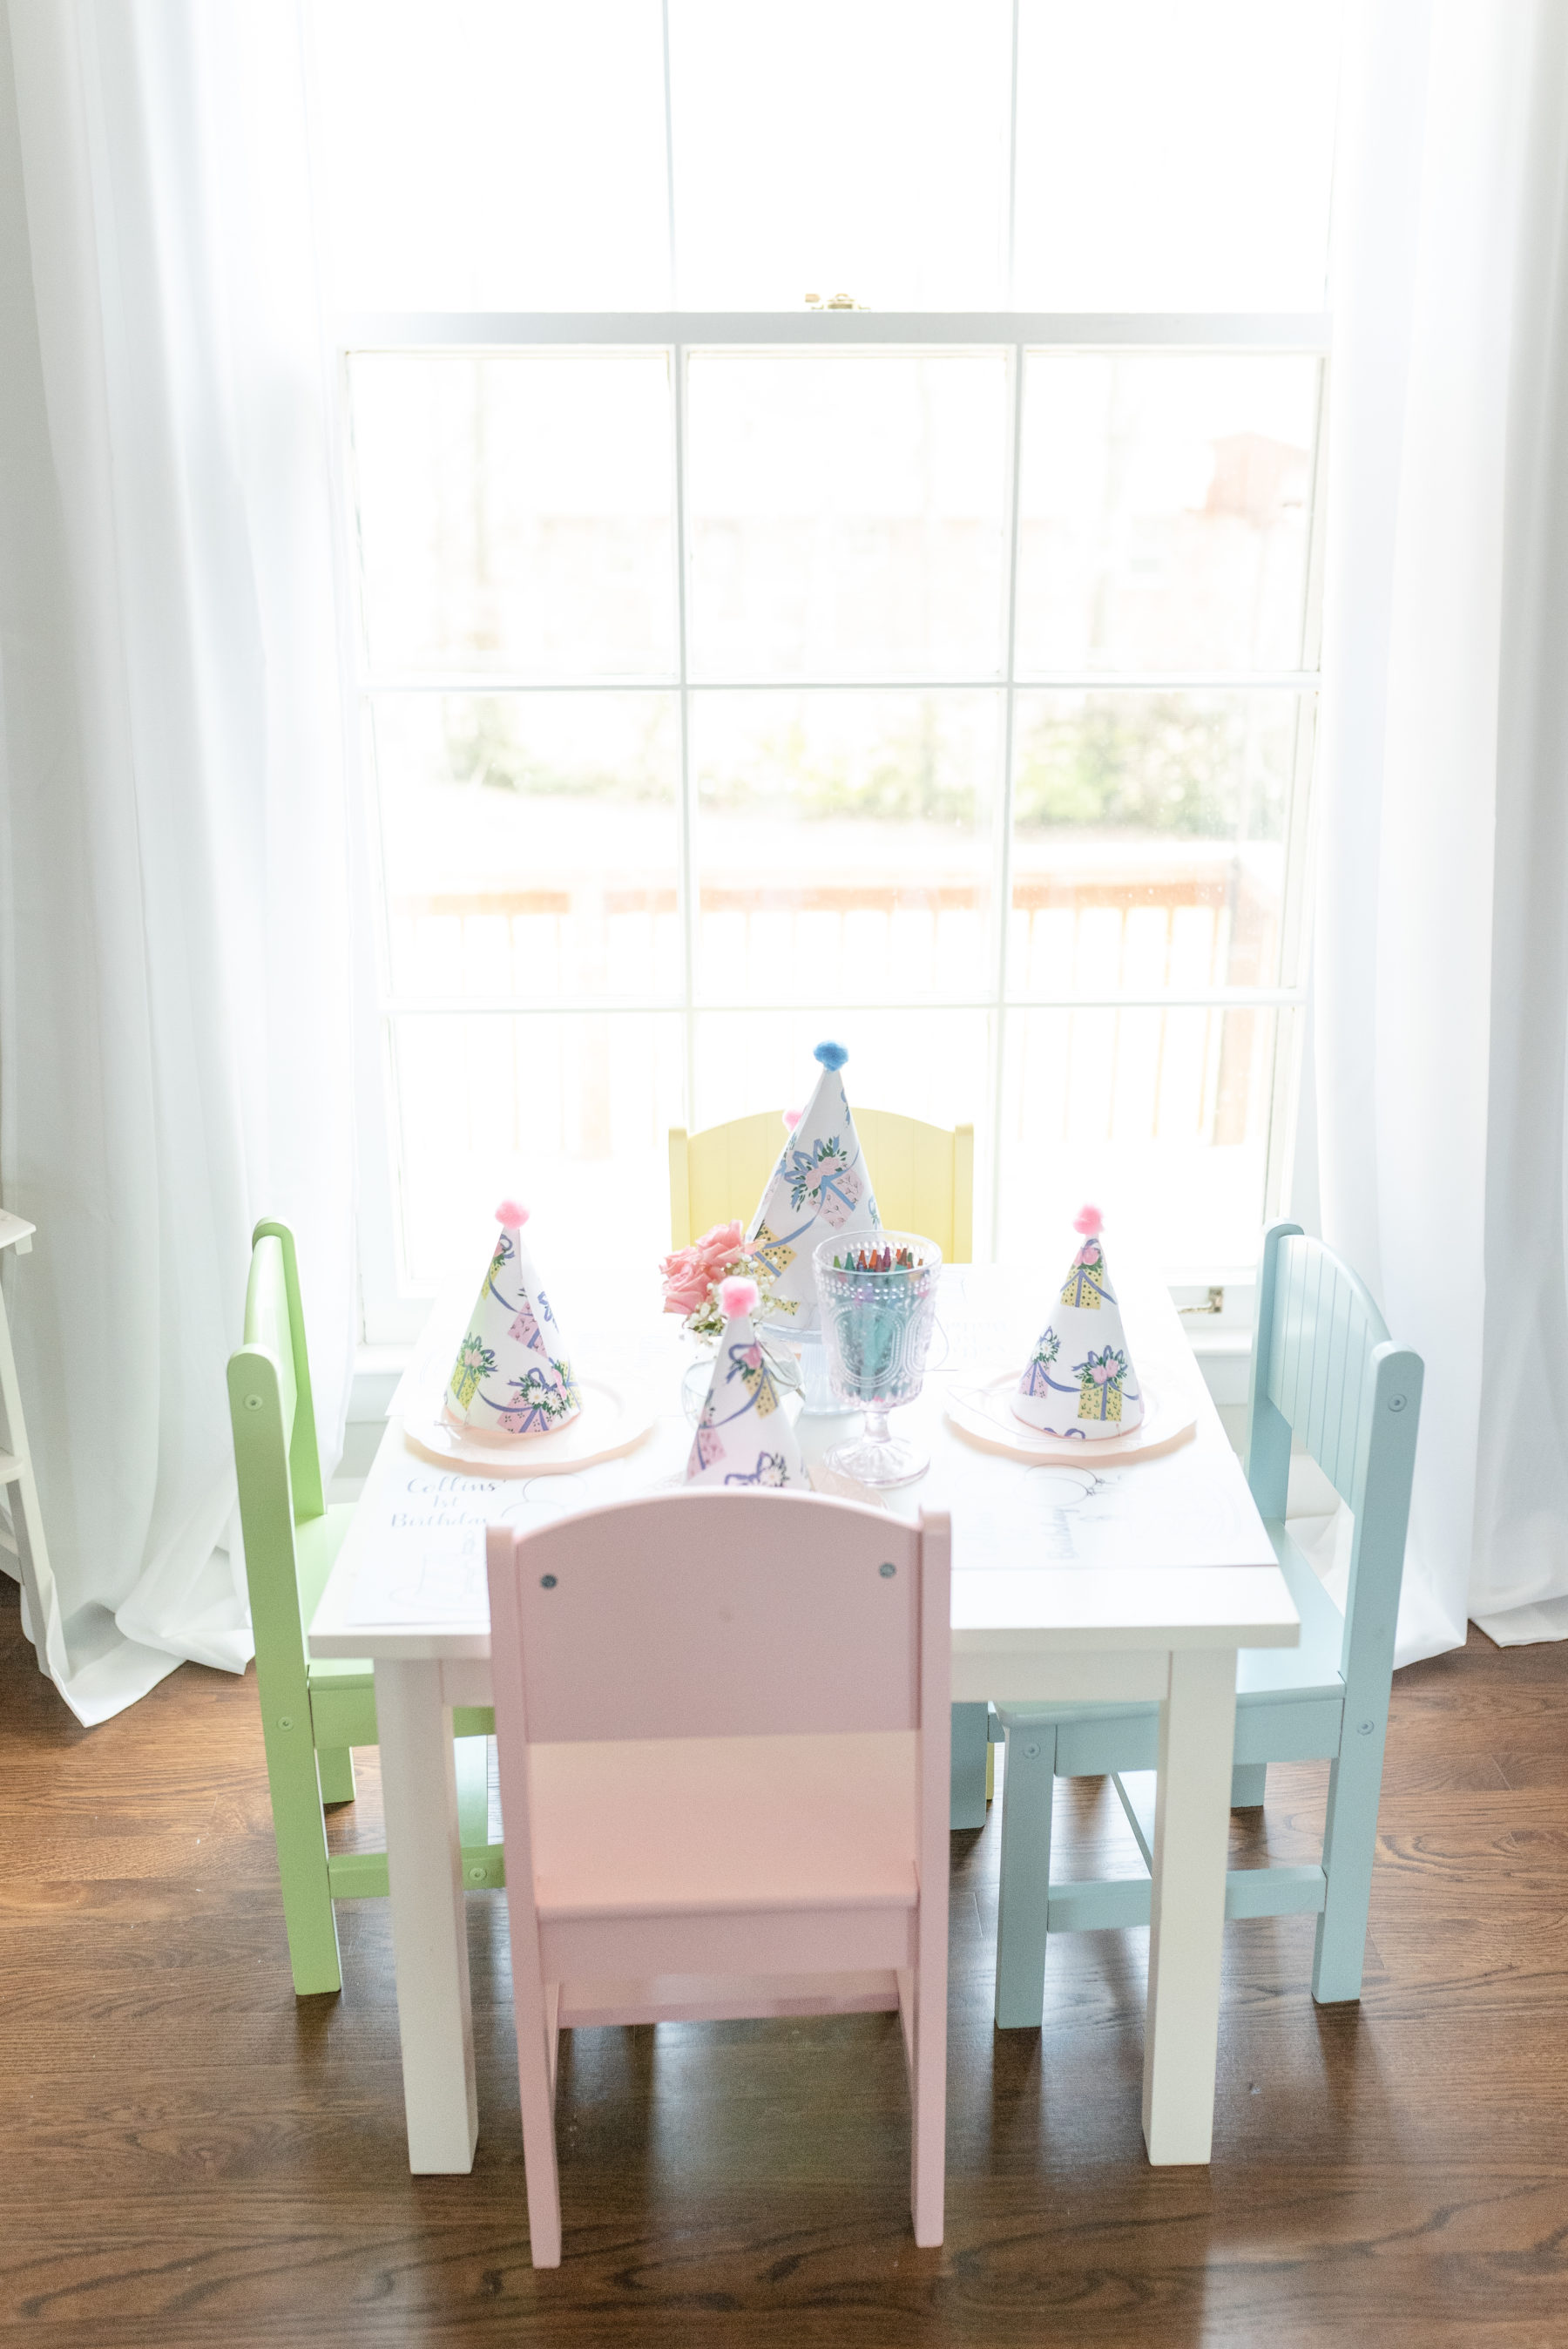 Pastel Kids Table: Gorgeous Pastel 1st Birthday Party featured on Nashville Baby Guide